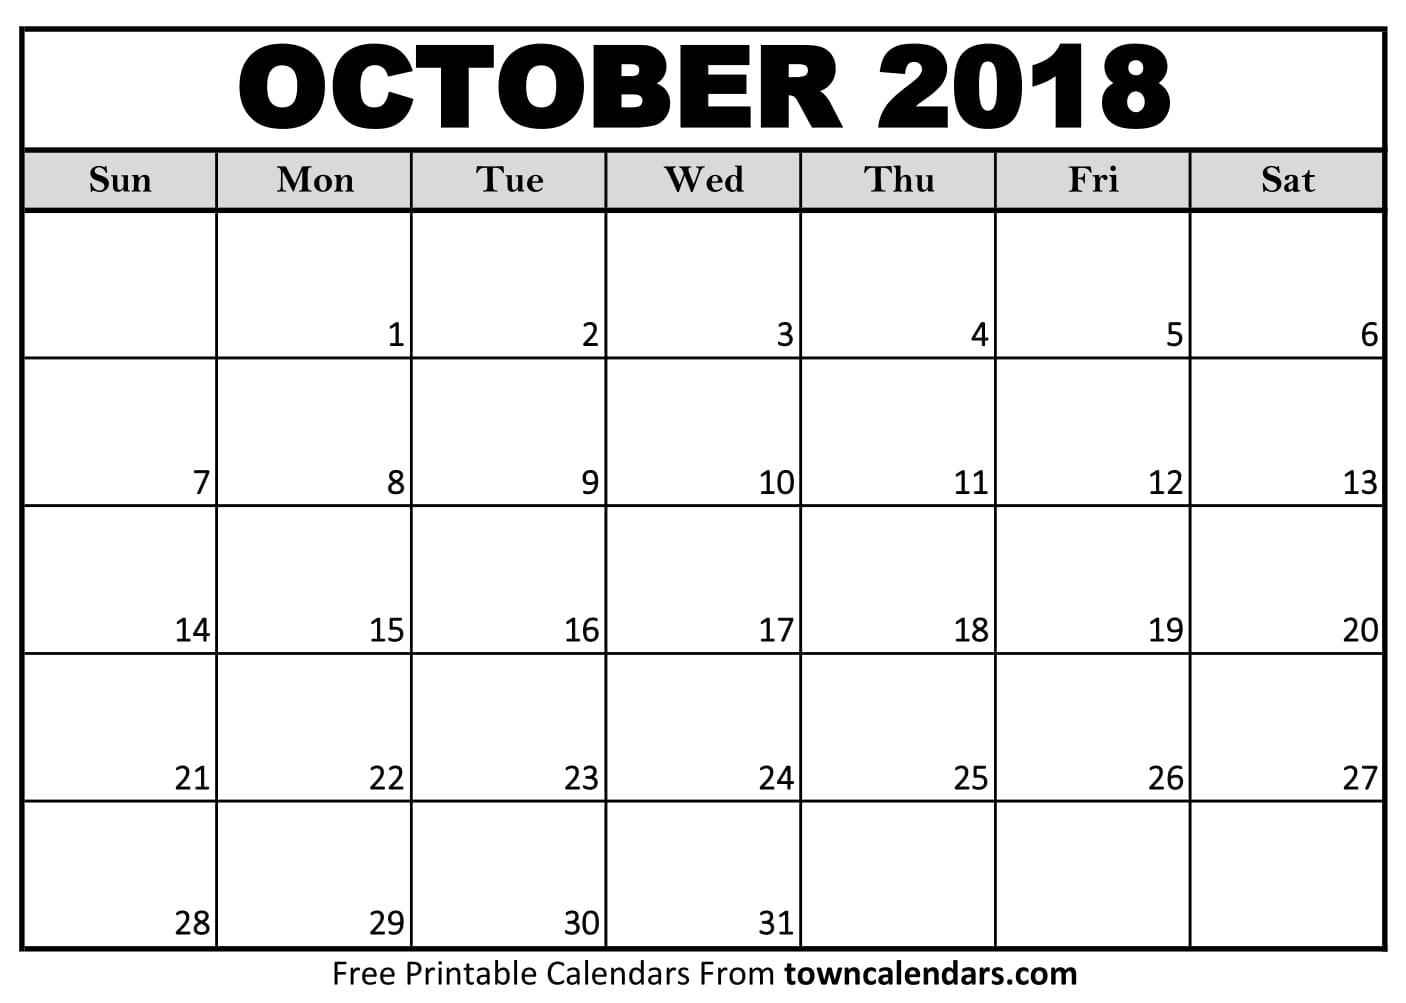 image about Free Printable October Calendar titled Oct 2018 Calendar - Absolutely free Obtain